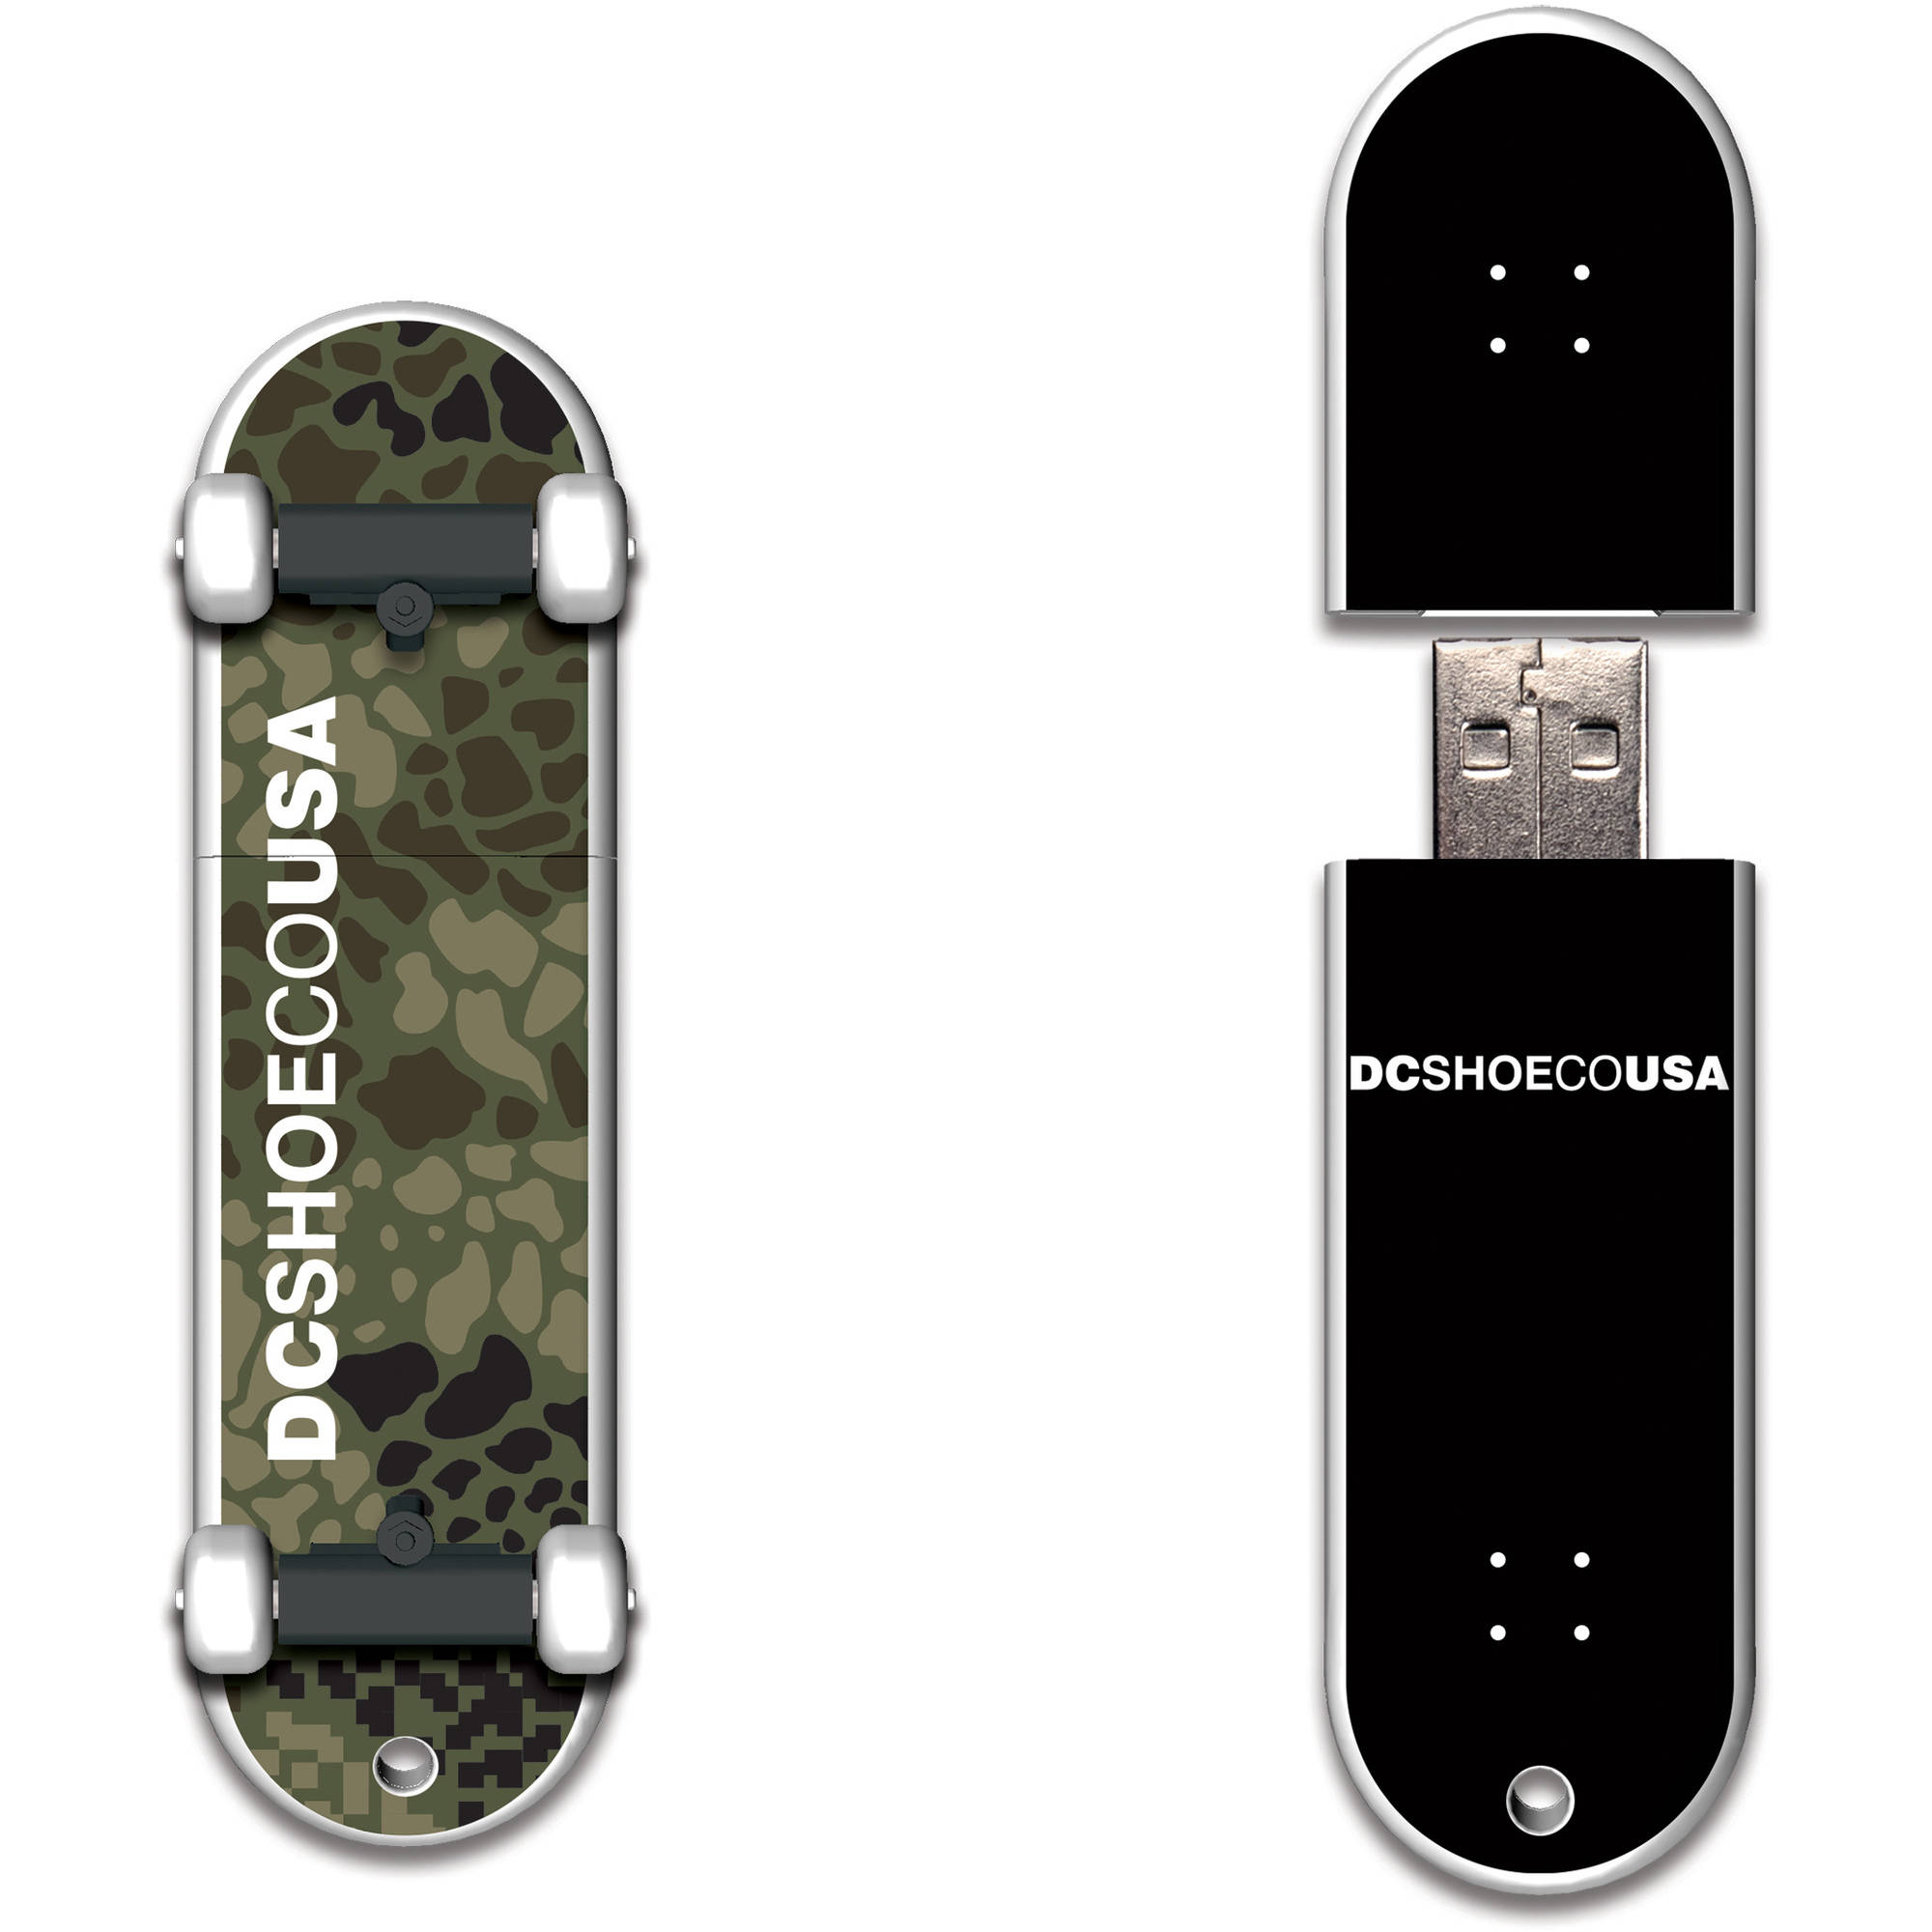 DC Shoes 32GB SkateDrive Croc Camo USB Flash Drive